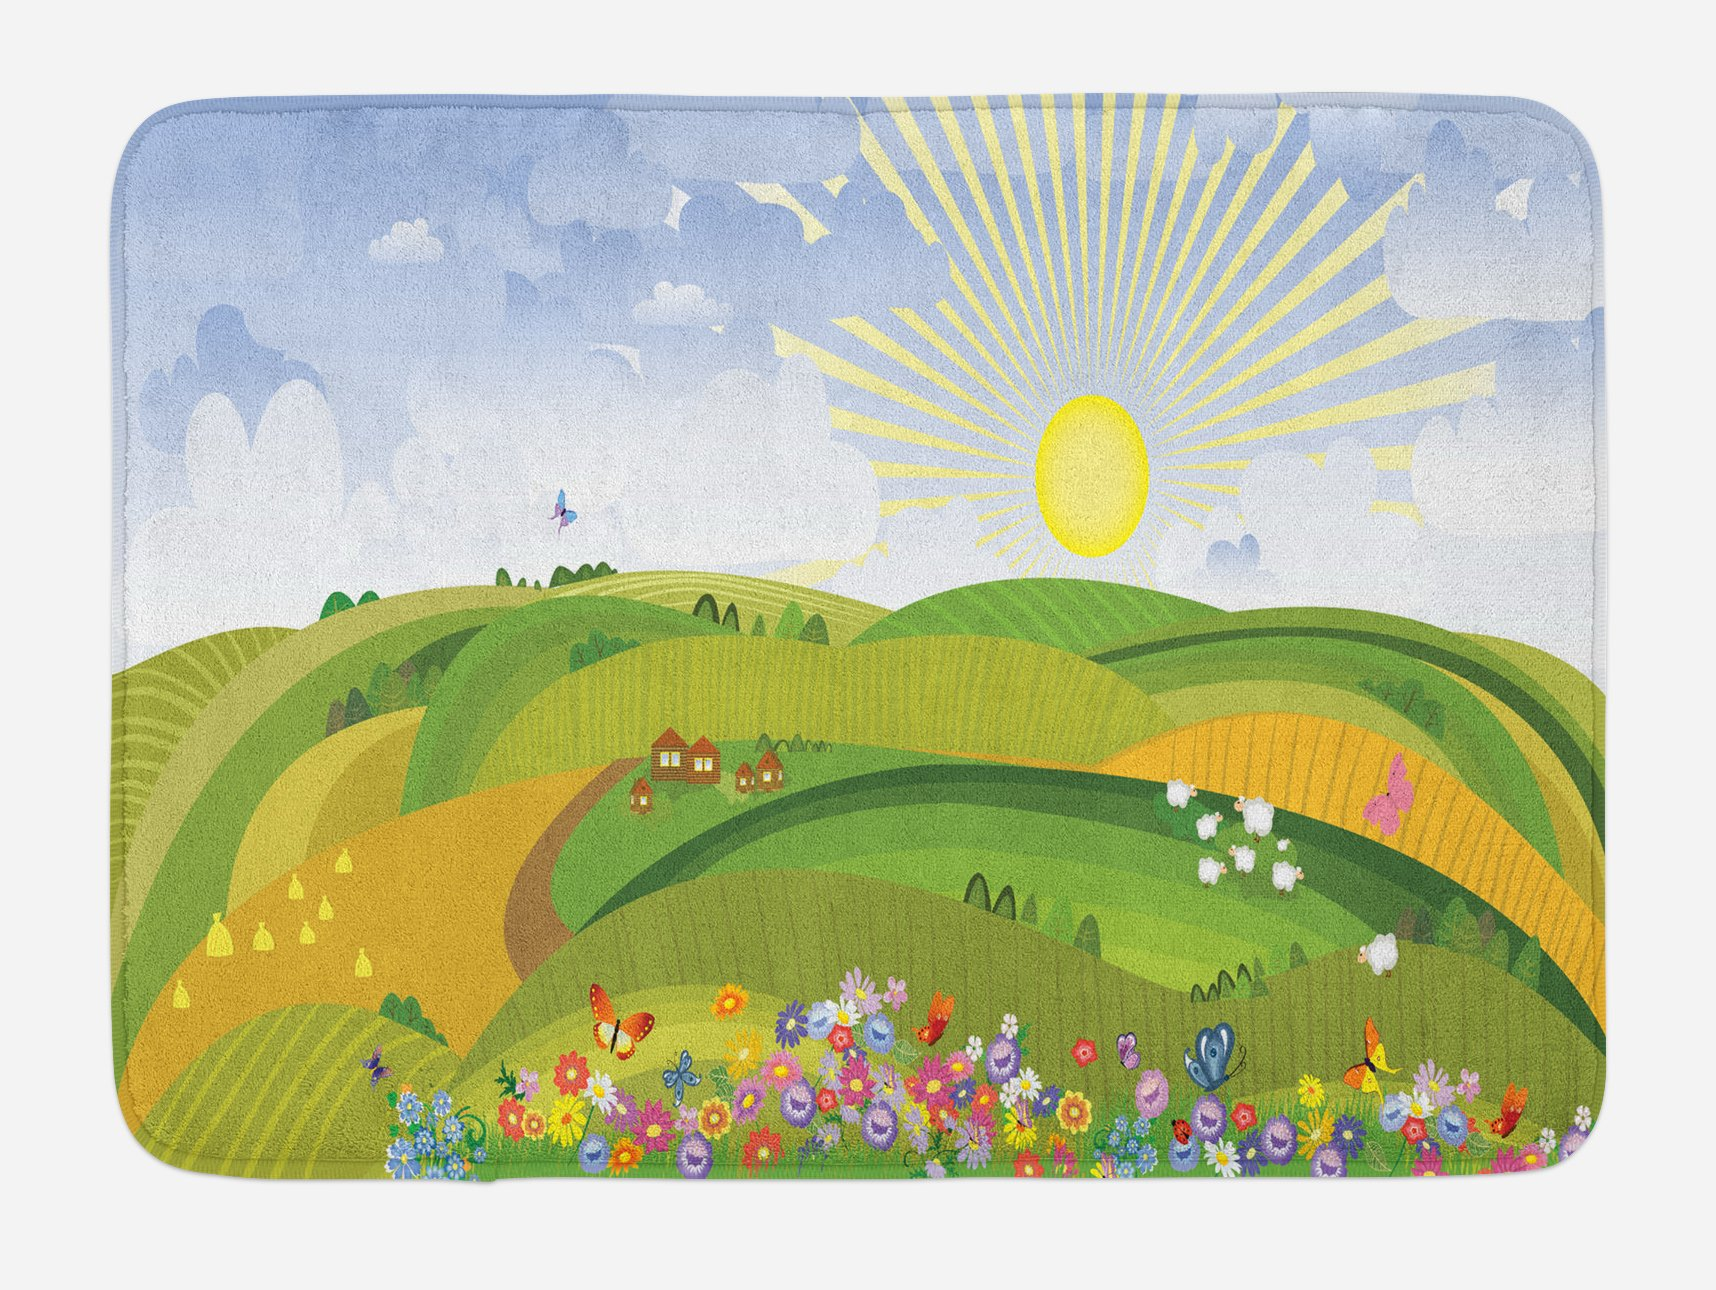 Lunarable Country Bath Mat, Rural Landscape Image with Green Fields Floral Gardens Houses and Sheep Animal Farm, Plush Bathroom Decor Mat with Non Slip Backing, 29.5 W X 17.5 W Inches, Multicolor